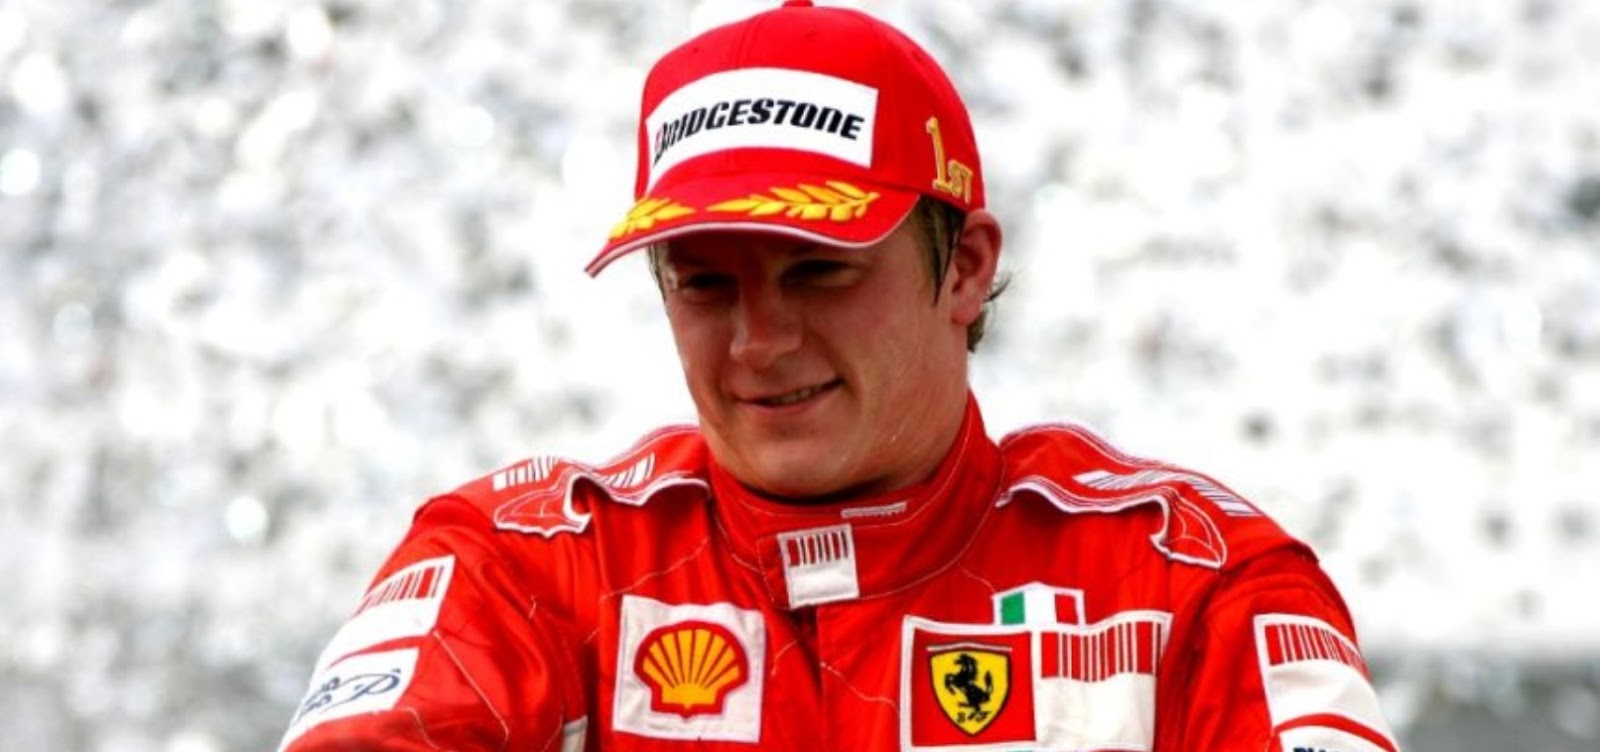 Kimi Raikkonen signed richest contract with Ferrari